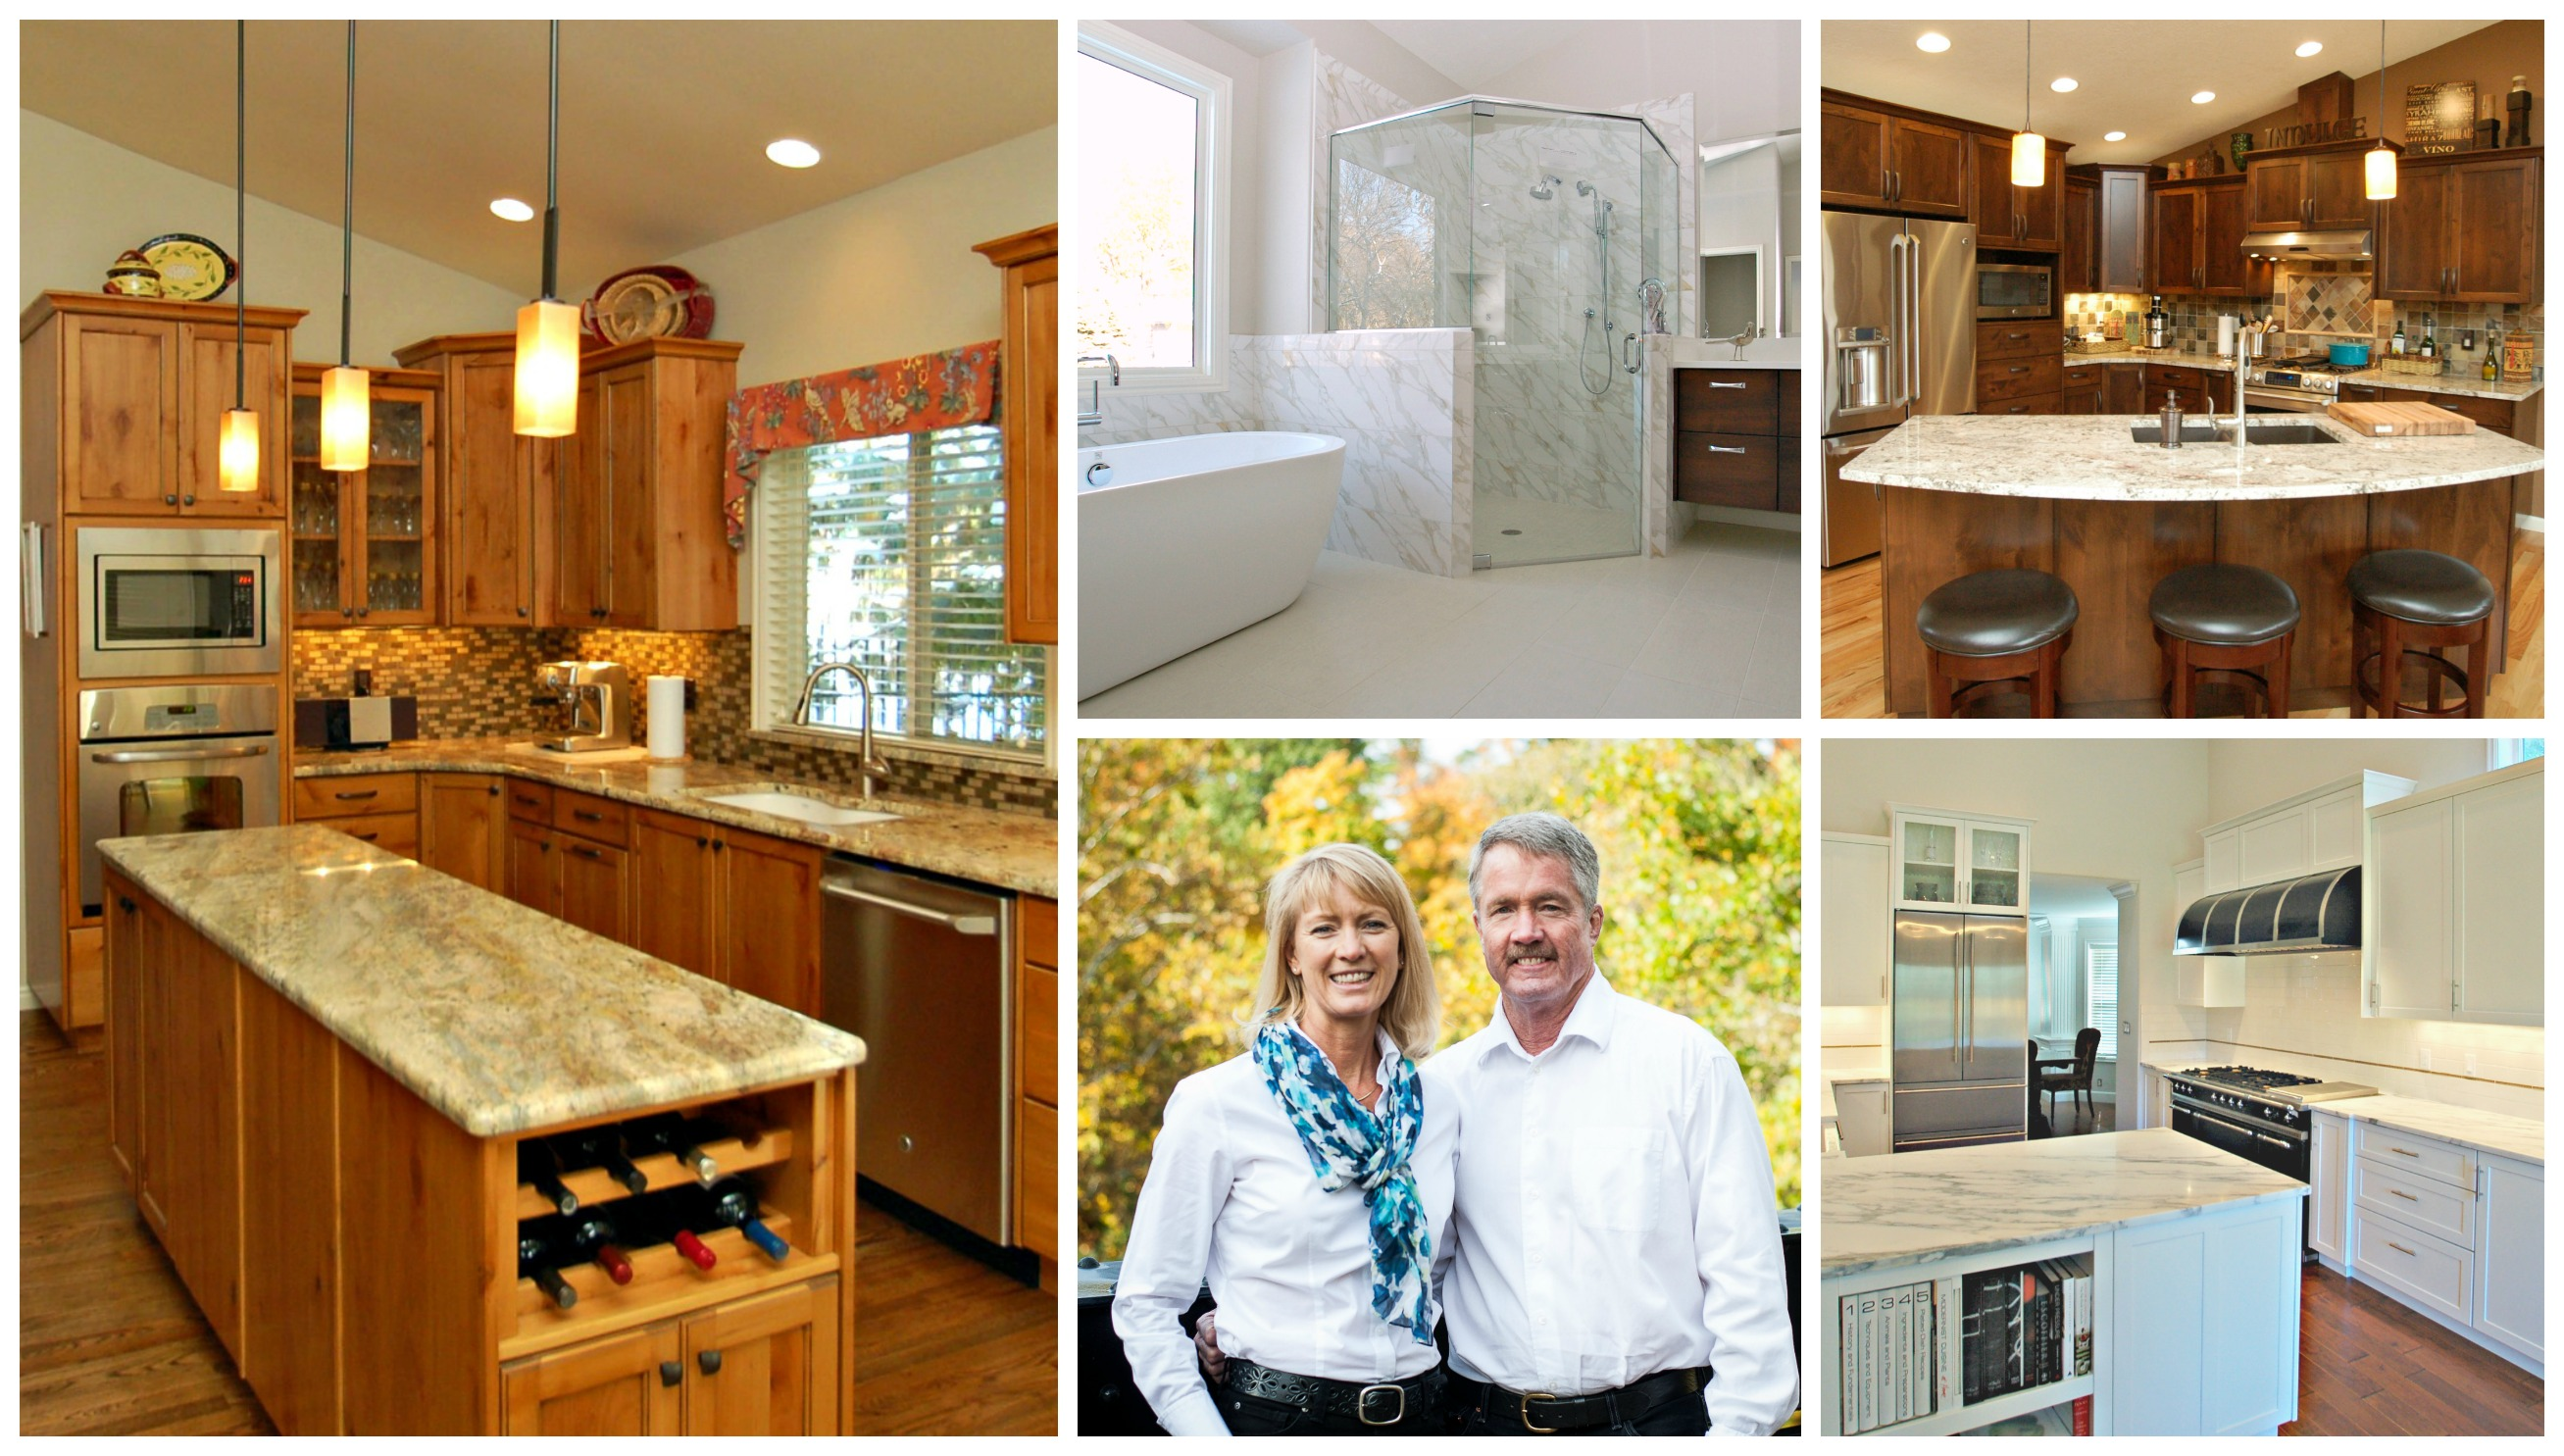 Keilty Remodeling. Kitchens, baths, whole house remodeling.